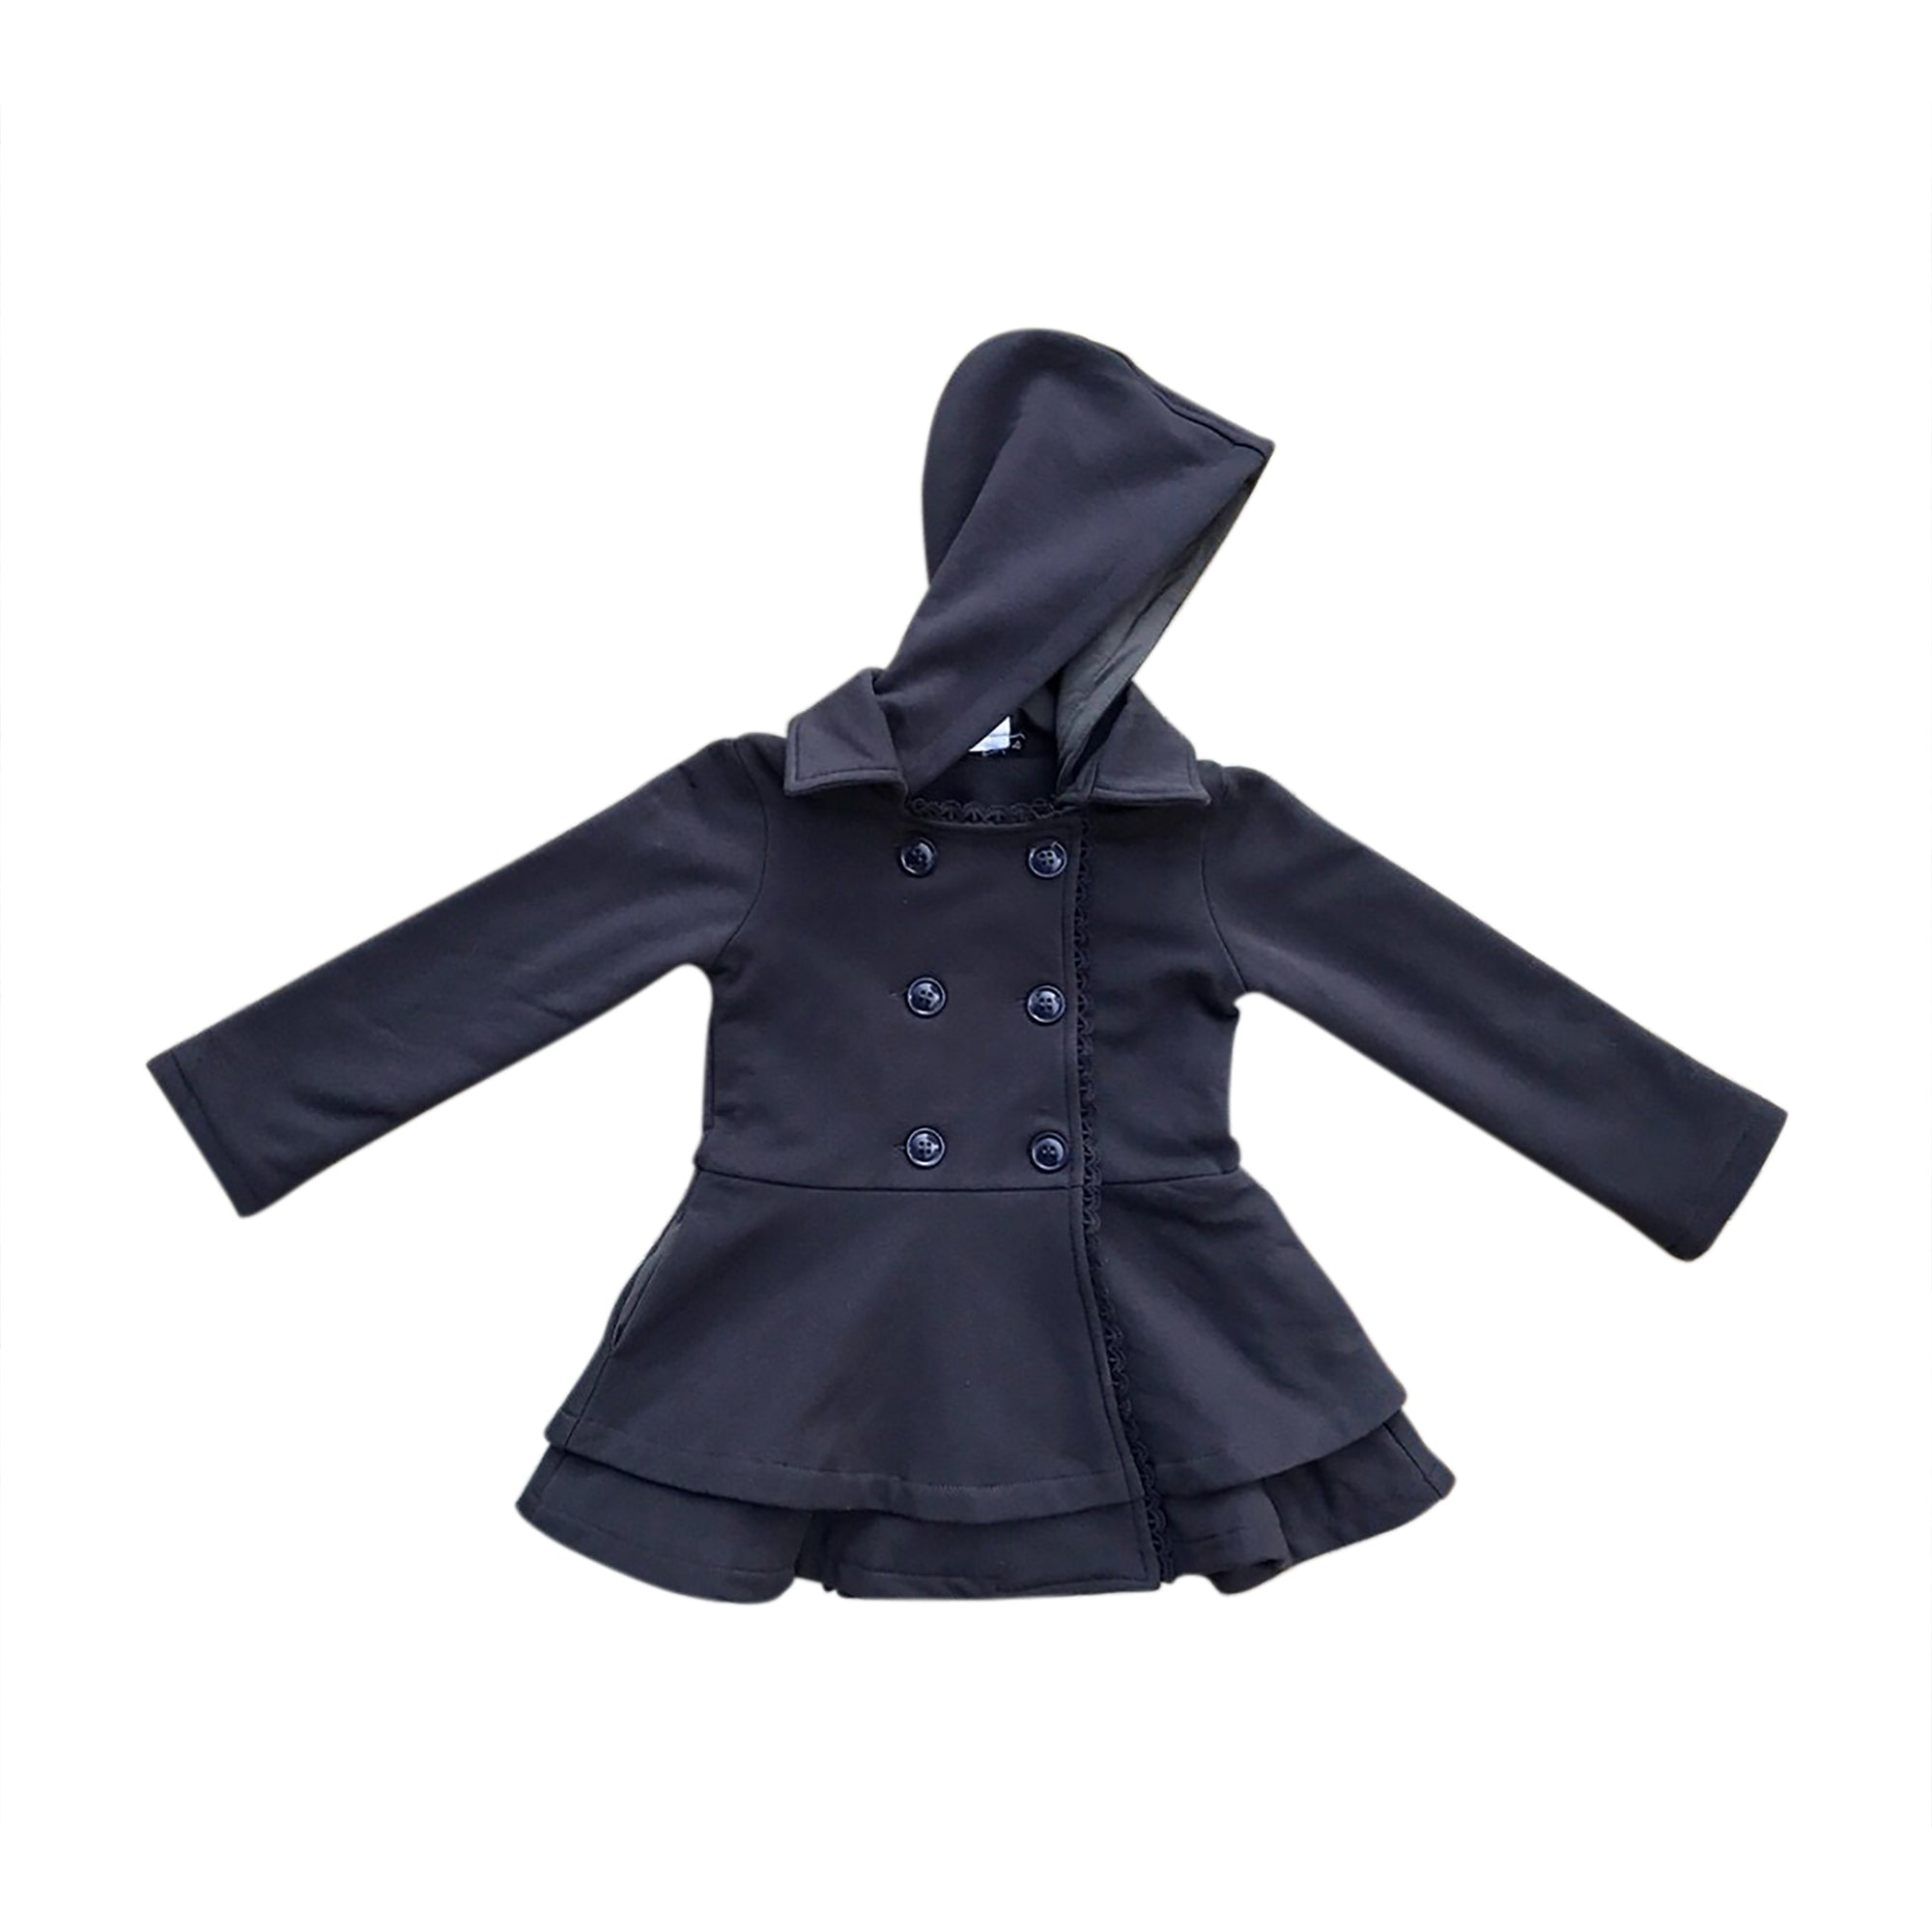 Dark Grey/Charcoal Penelope Ruffle Coat